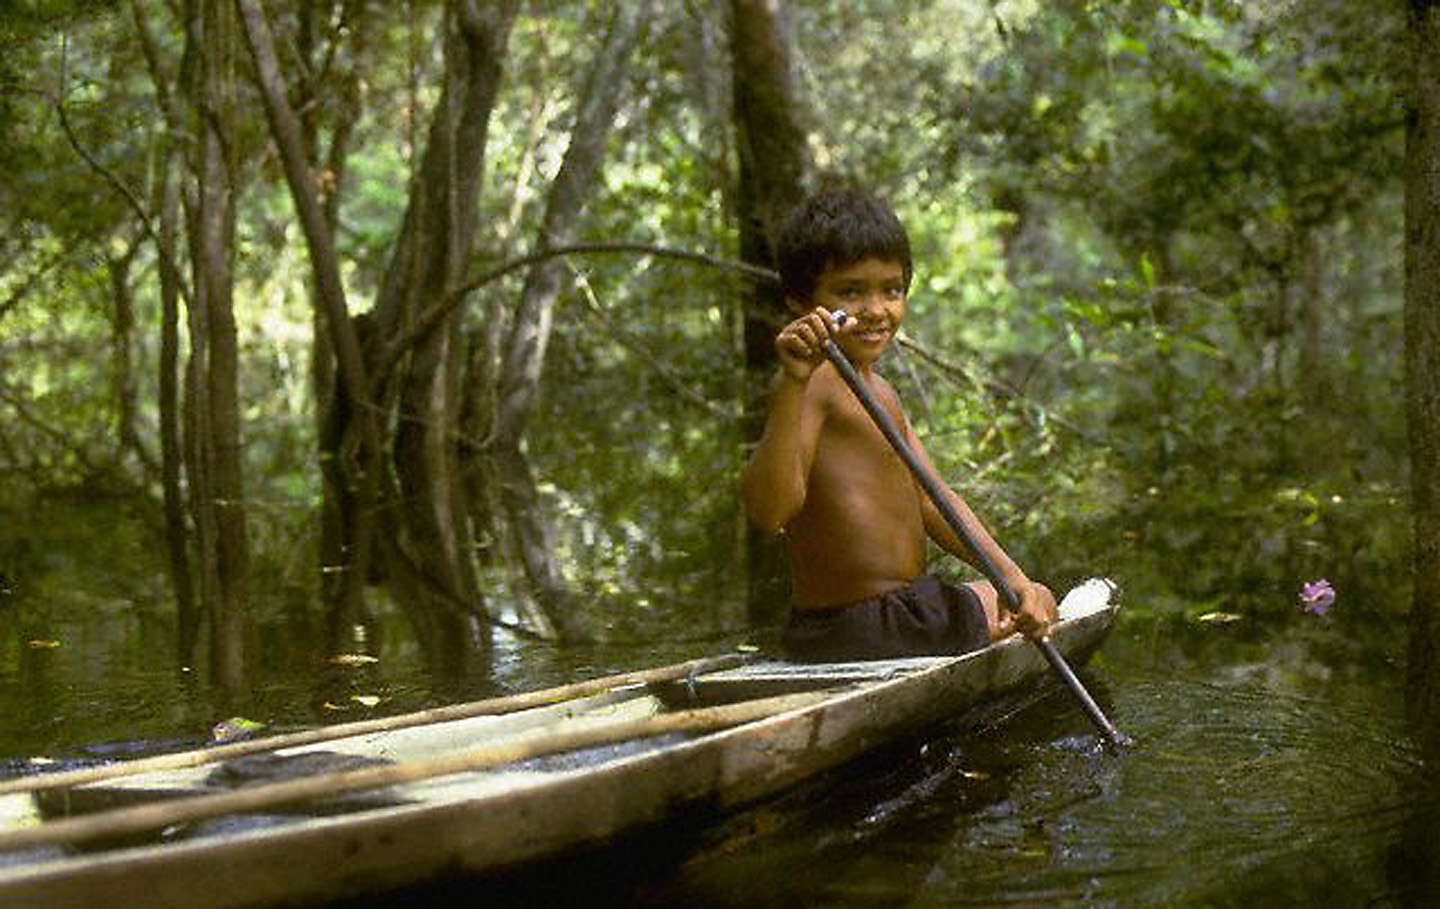 Brazilian Boy Paddling Dugout Canoe on Amazon River